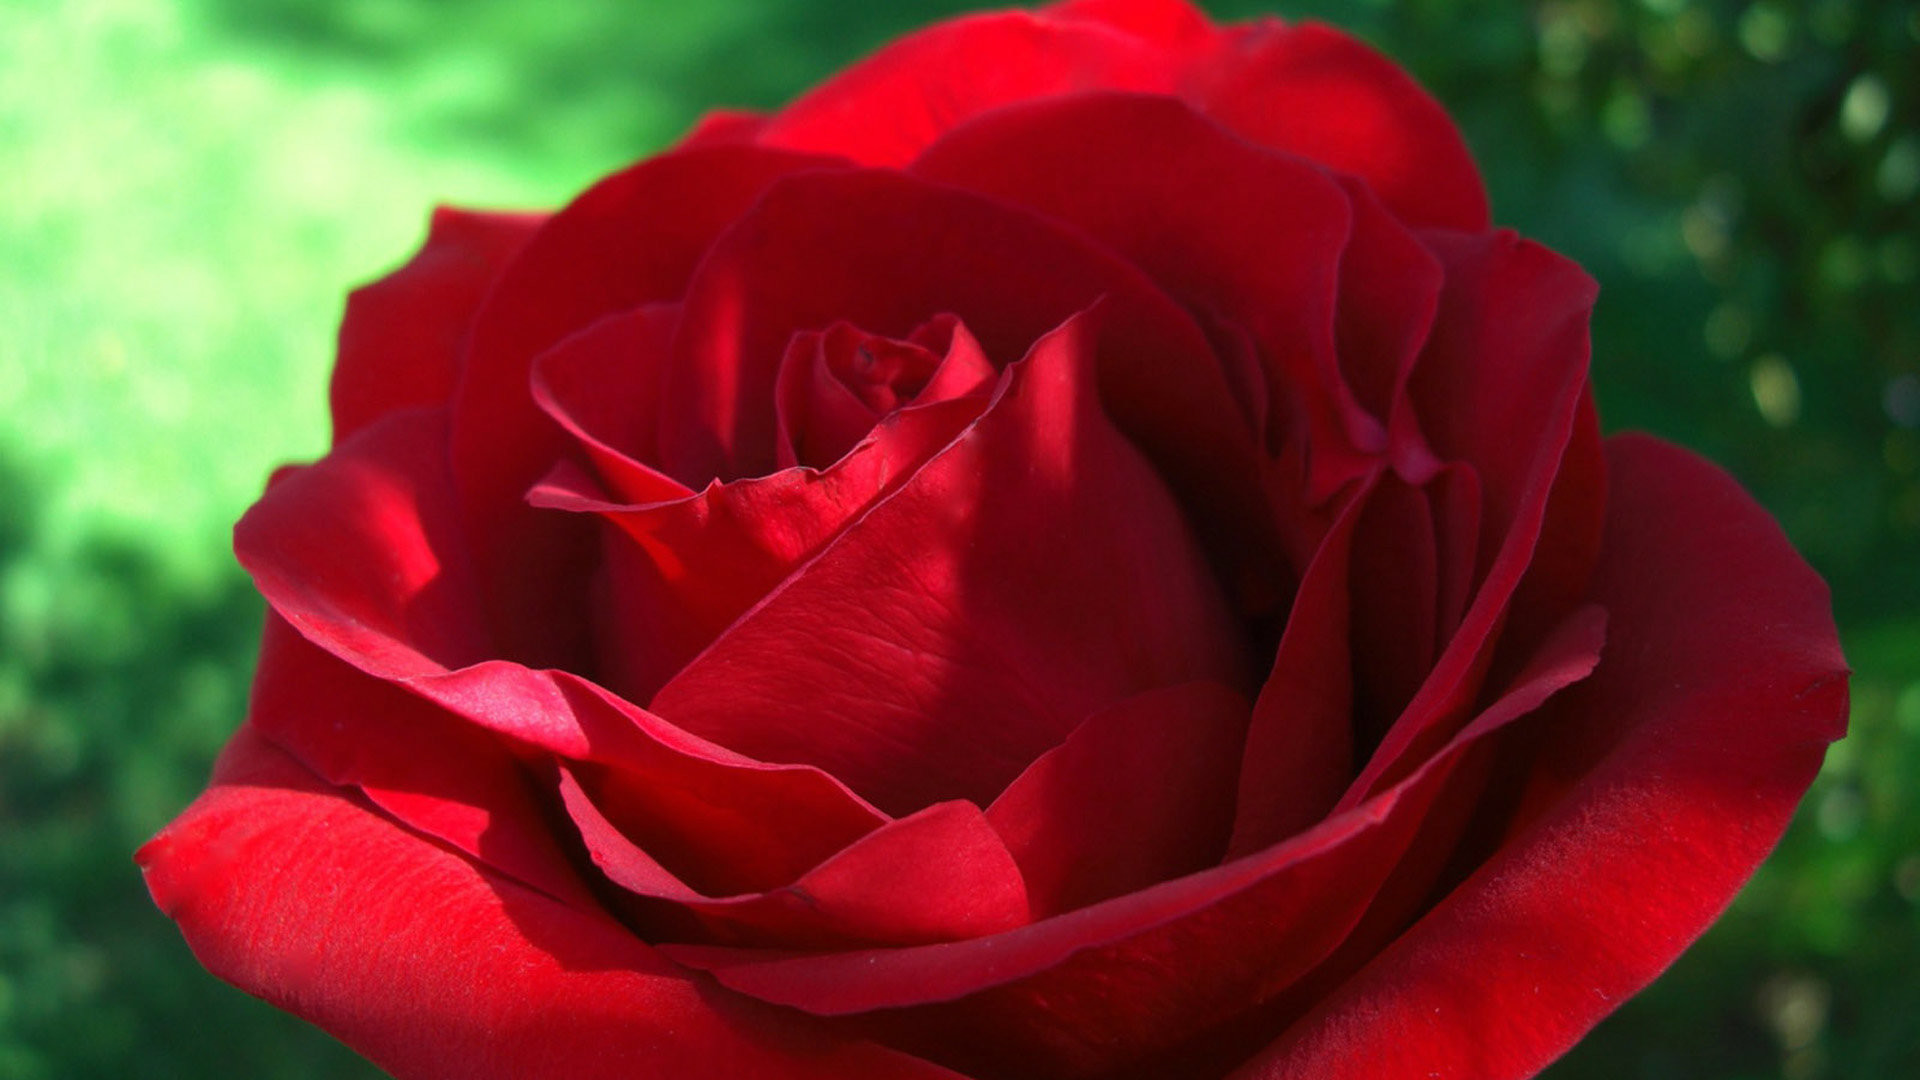 1920x1080 Lovely Red Rose Wallpaper For Desktop